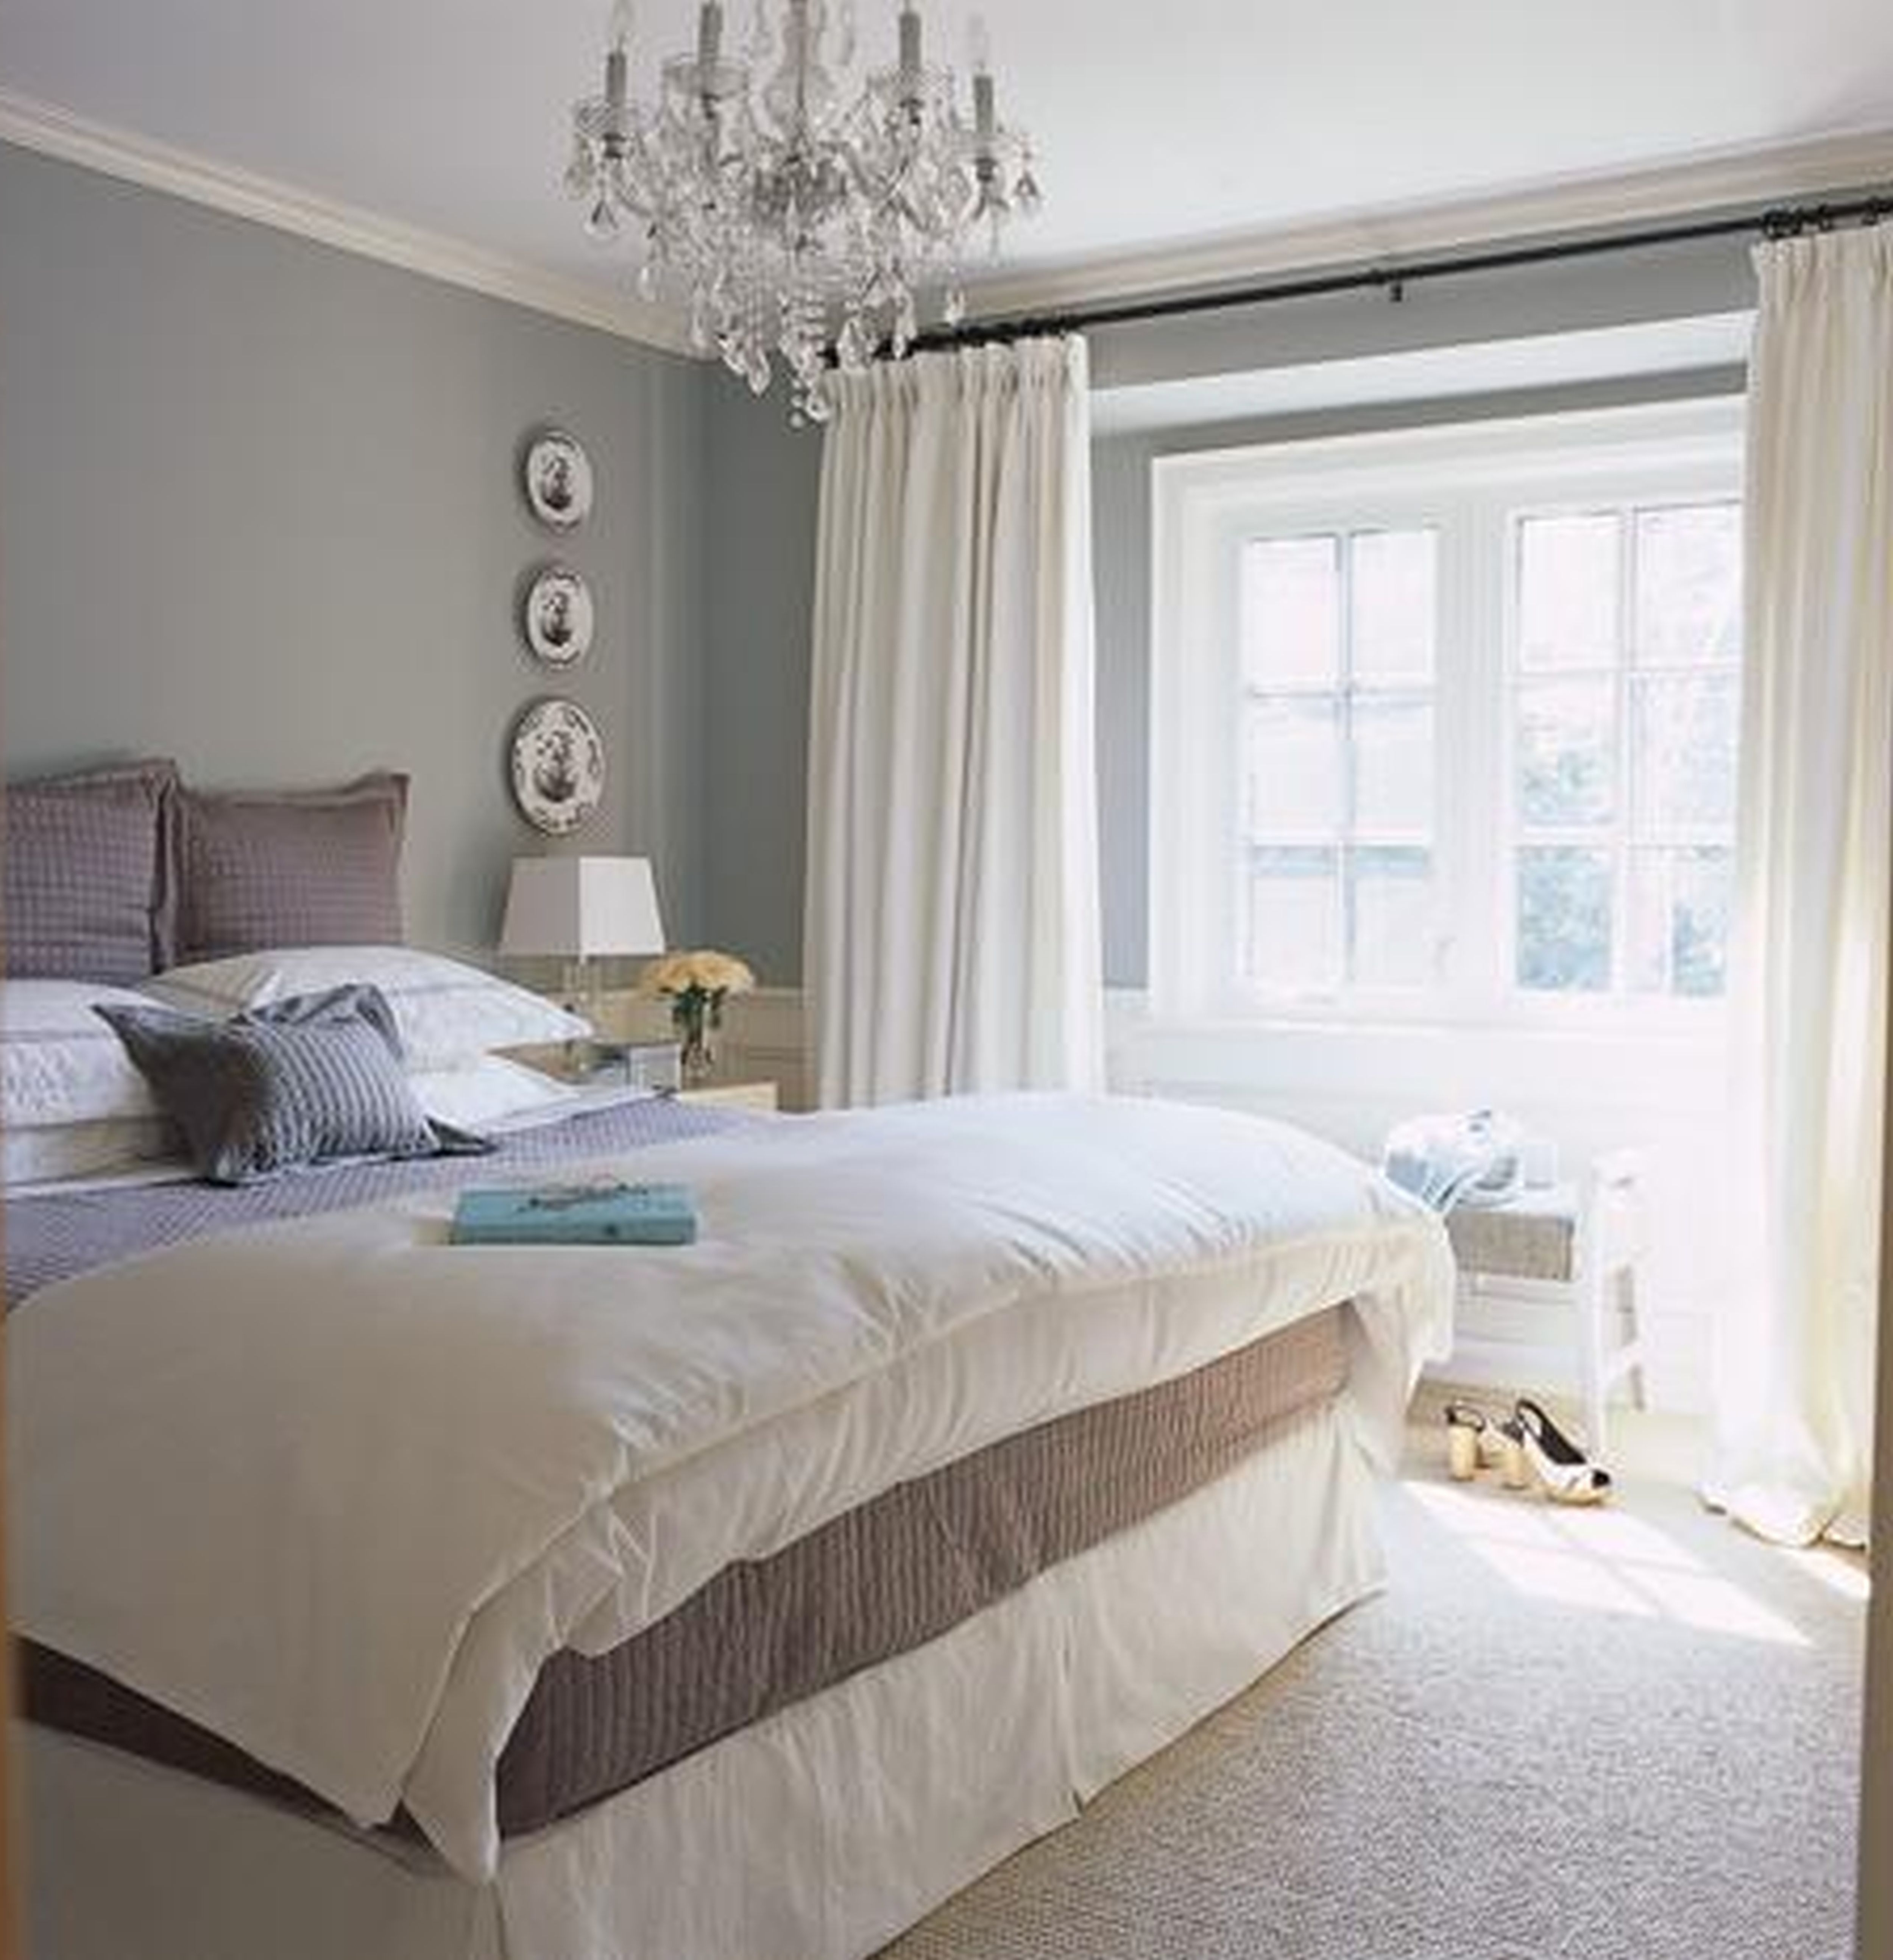 Turquoise Bedroom Ideas Design Come With Small And Eas Architecture With Favorite Turquoise Bedroom Chandeliers (View 20 of 20)